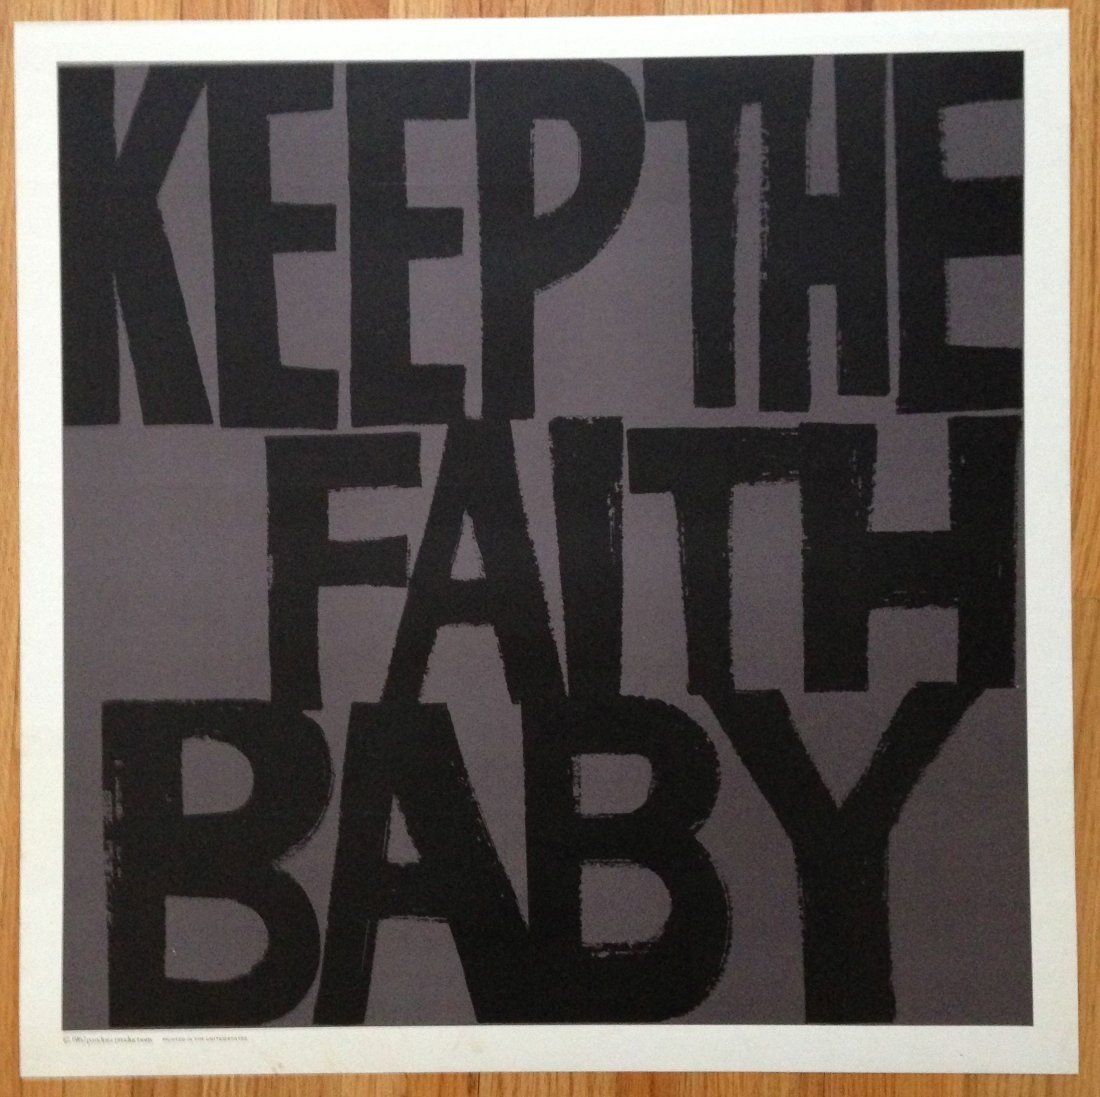 395: Vintage 60s Hippy Poster - Keep The Faith Baby - 1